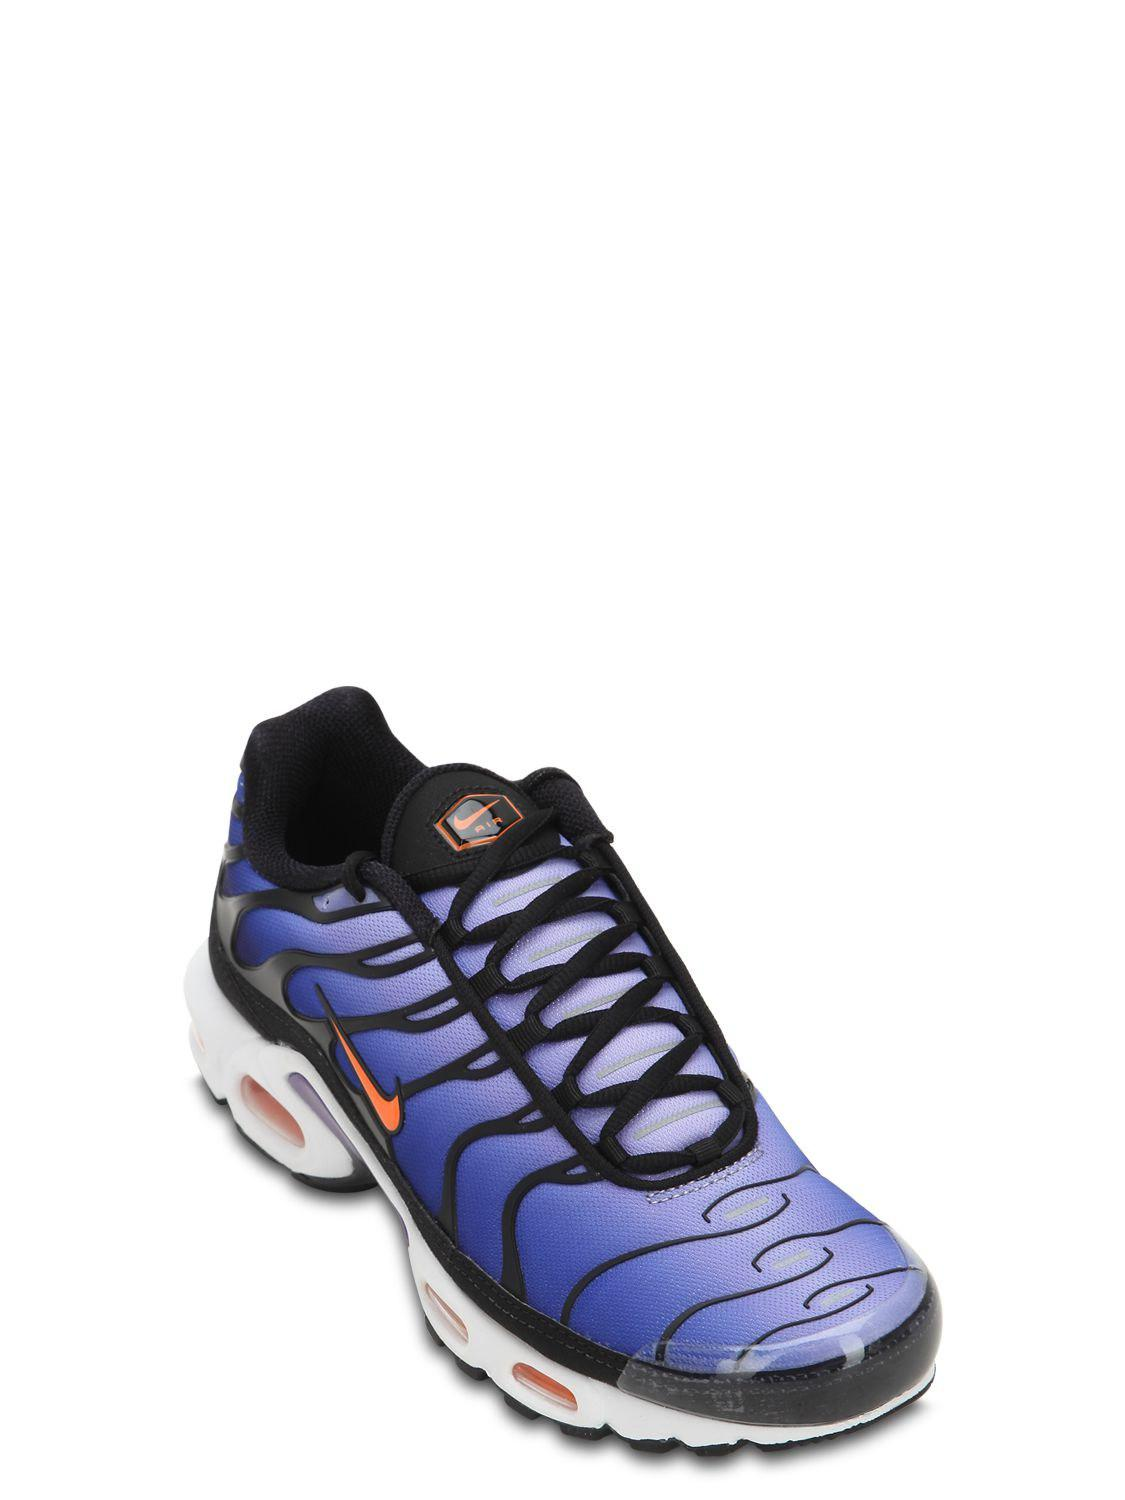 Nike Air Lyst Og Plus Max Lila Sneakers In TOkiZPuX